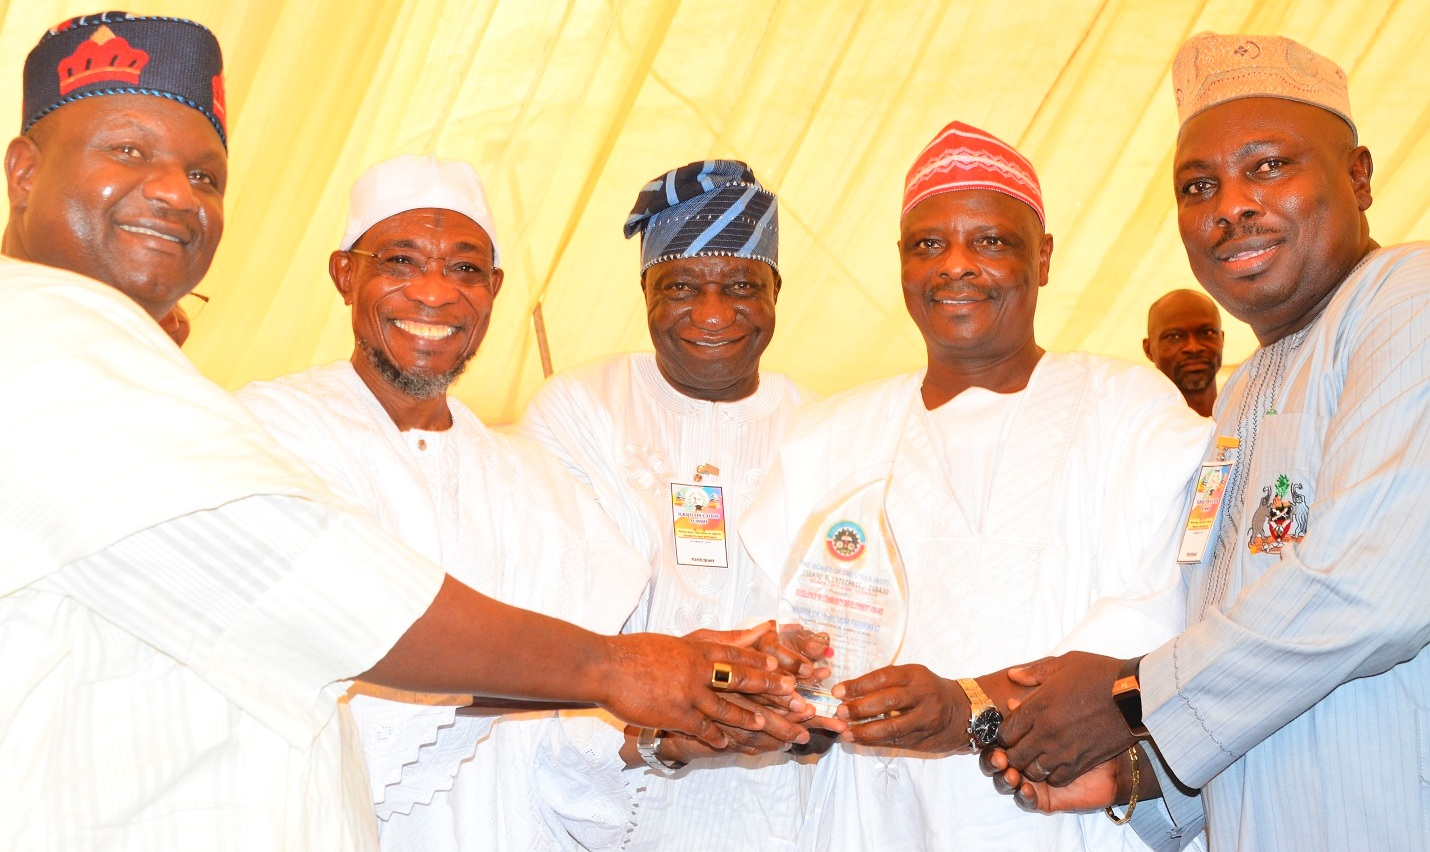 Governor State of Osun, Ogbeni Rauf Aregbesola (2nd left);  Former Governor of Kano State, Senator Rabiu  Musa Kwankwaso (2nd right), former Commissioner for Information and Strategy, State of Osun, Hon. Sunday Akare (right), Chairman All Progressive Congress (APC), State of Osun, Prince Gbenga Famodun (left), and Registeral Joint Admission and Matriculation Board, Prof. Dibu Ojerinde (middle), during the 2nd Education Summit & Presentation of the Award of Excellence in Community Development to Former Governor, of Kano State, at Igbajo Polytechnic,Igbajo, State of Osun, on Thursday 22/10/2015.